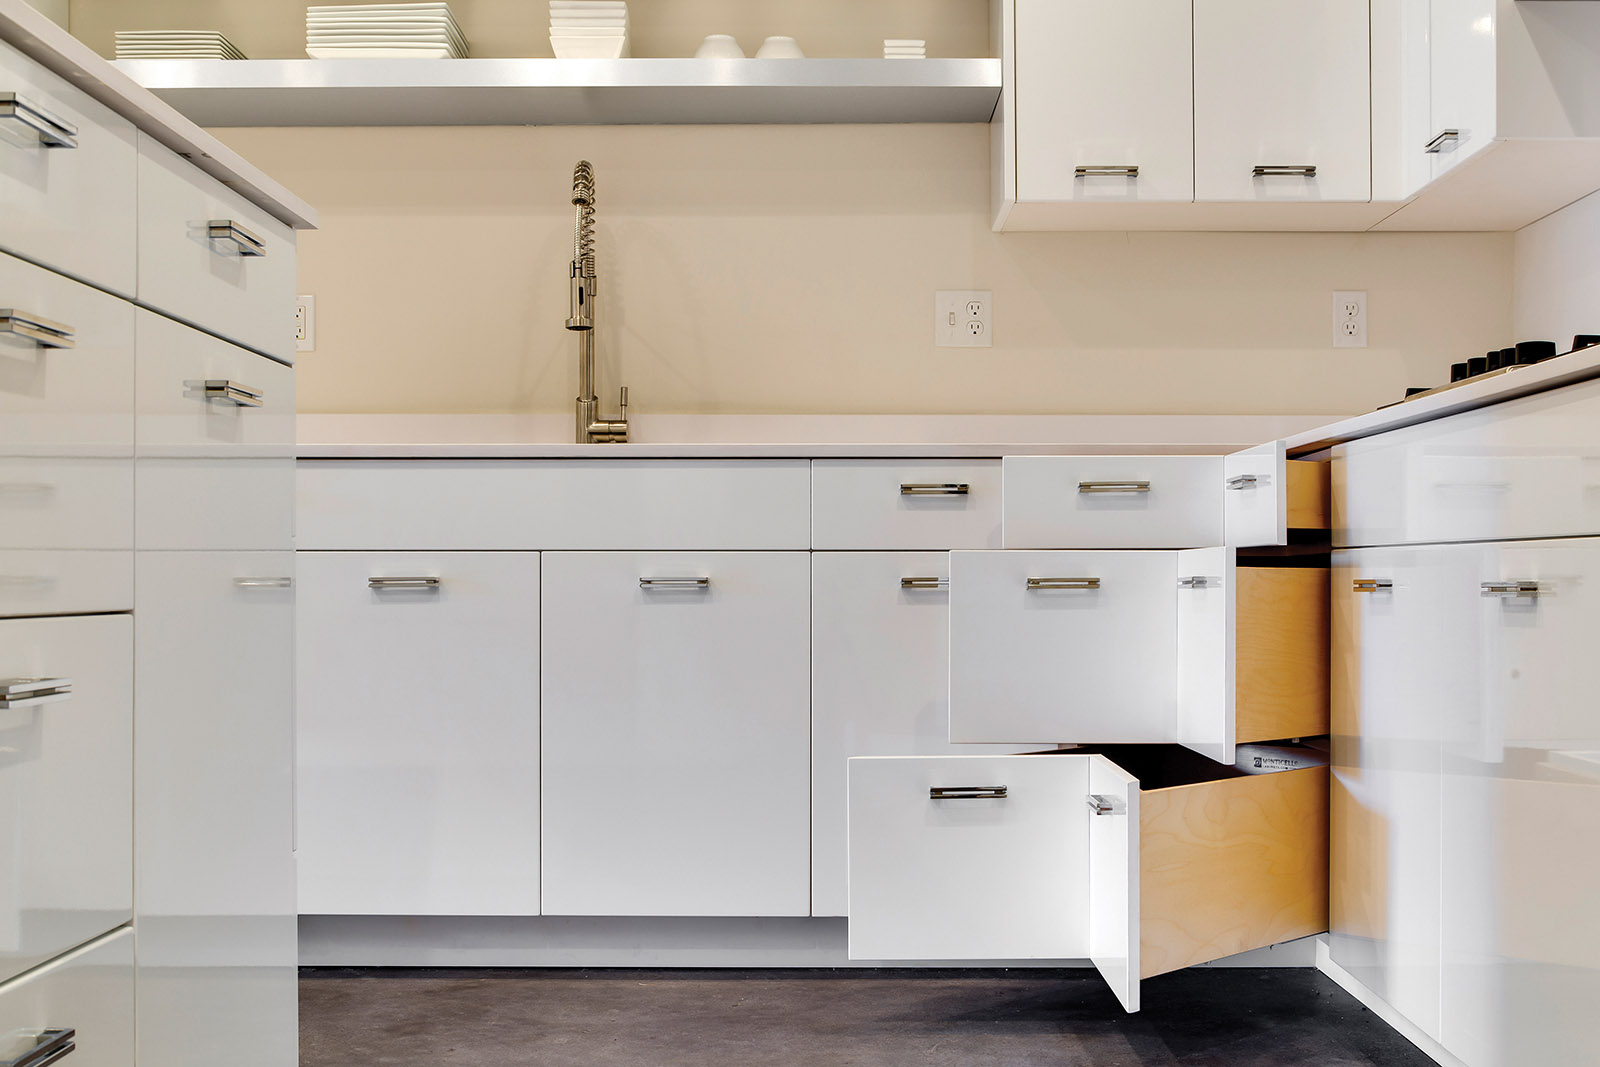 Loft Contemporary Kitchen Cabinets: White with Pull-Out Corner Drawers